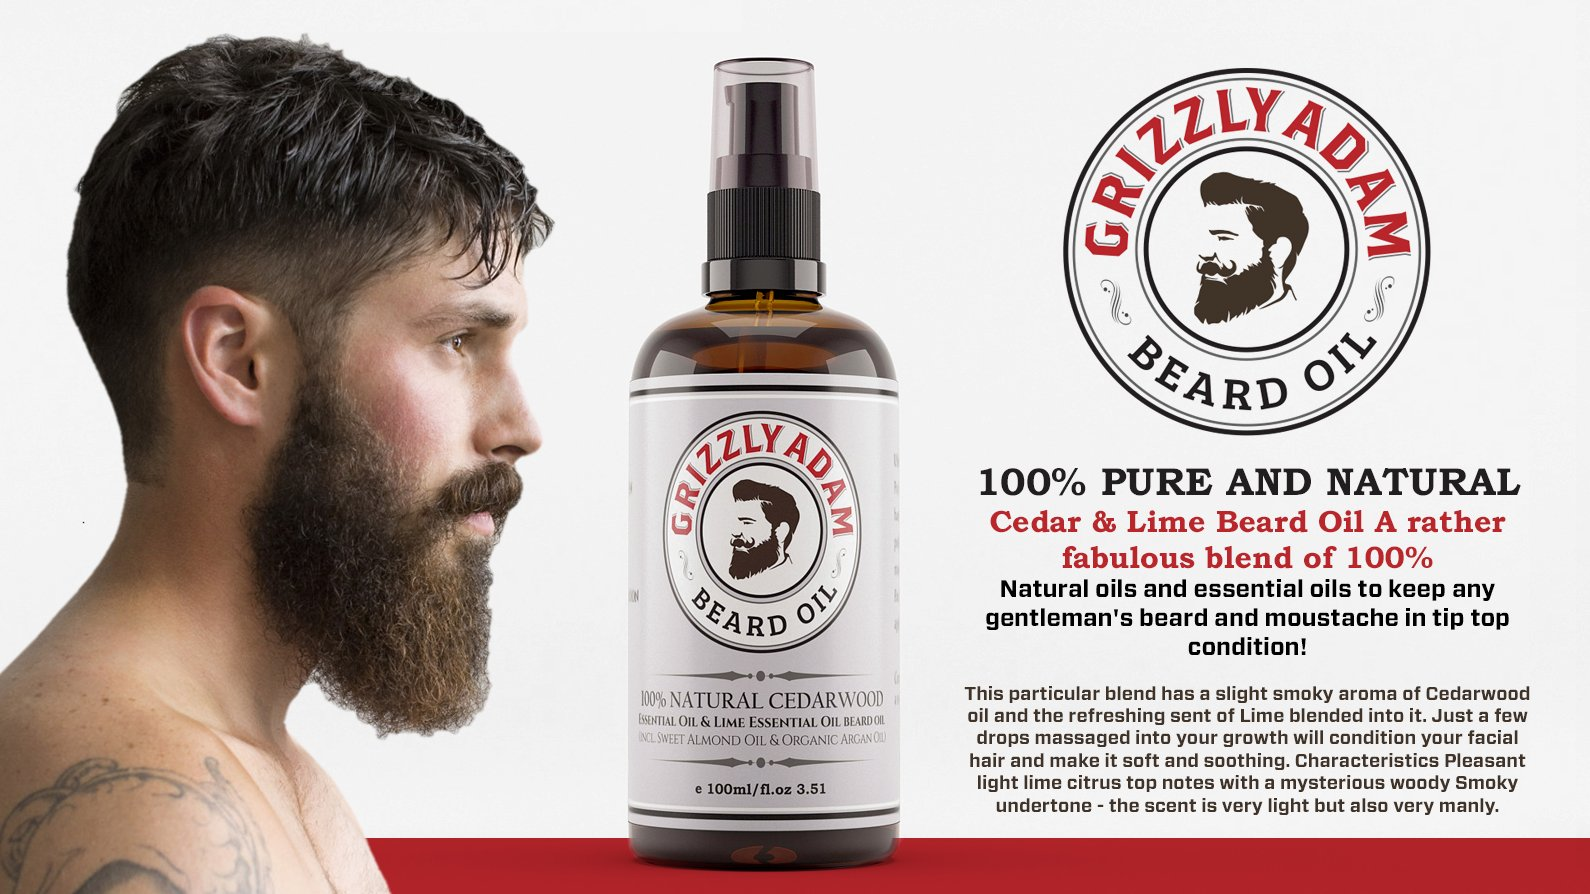 Beard Care Kit for Men - Top Rated Beard Care Products - All Natural Beard Oil, Beard Scissors and Beard Comb Ideal for Grooming Badass Beards and Moustache by GRIZZLY ADAM